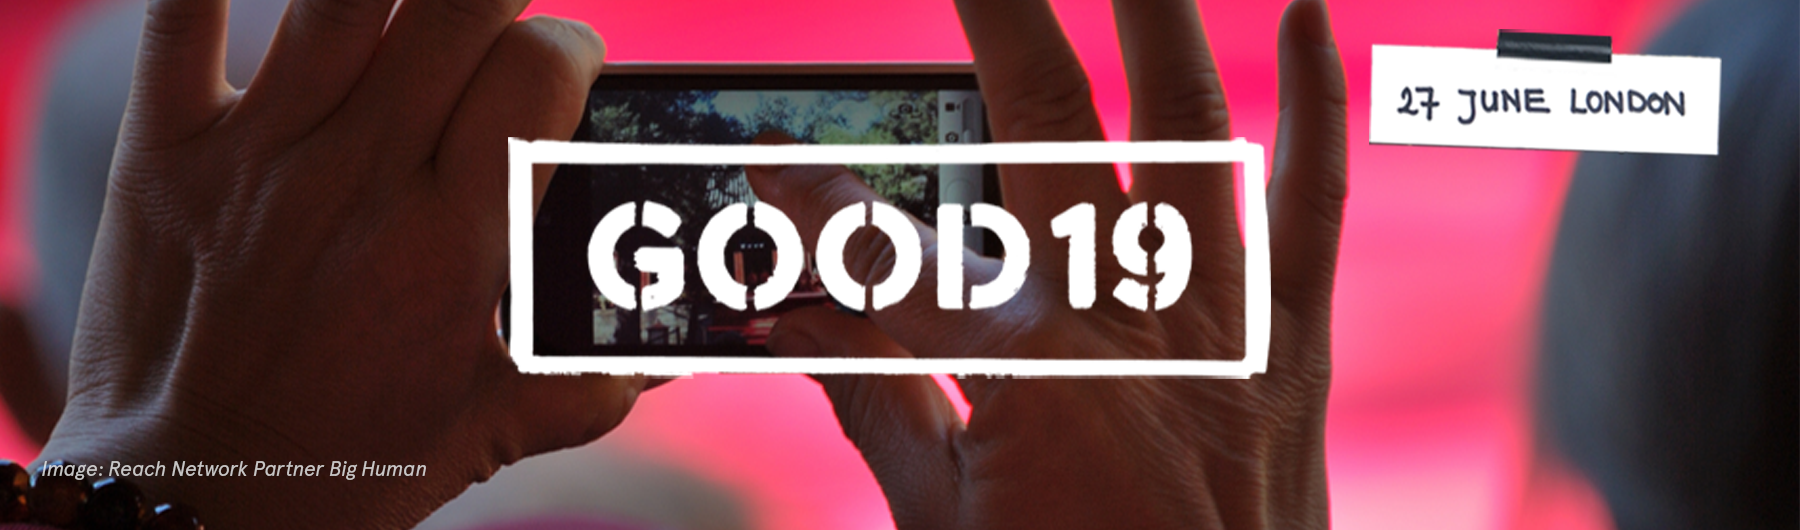 Great Outdoors Of Design conference (GOOD19)